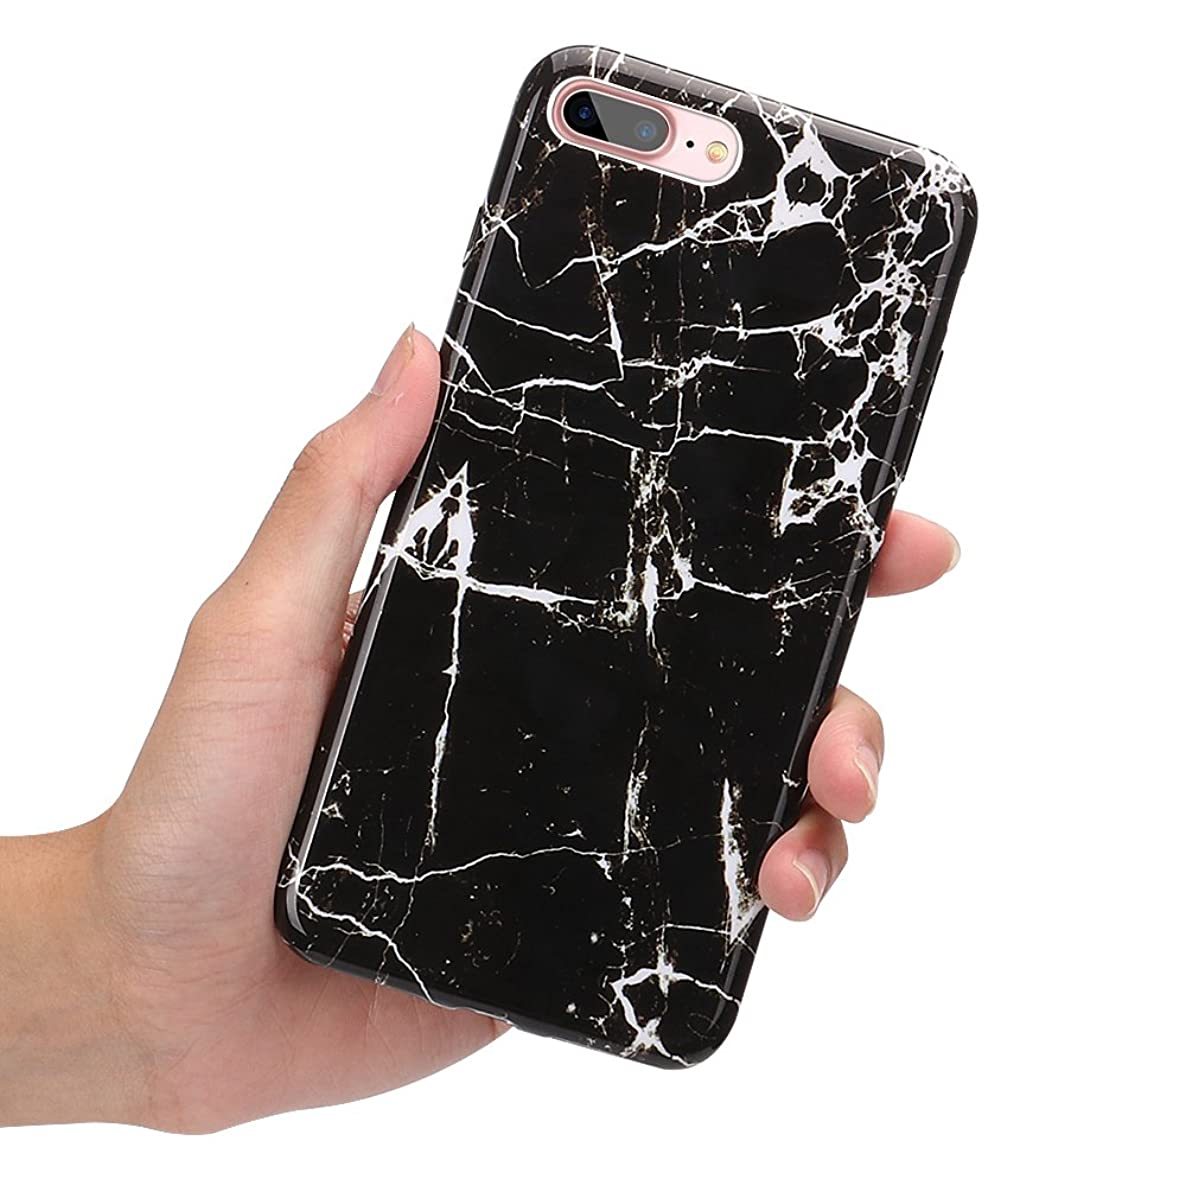 iPhone 8 Plus Case, iPhone 7 Plus Case, KAMII Marble Series Slim Fit Anti-Scratch Soft TPU Rubber Silicone Flexible Thin Back Protective Case for Apple iPhone 7 Plus/8 Plus (5.5inch) (Black)